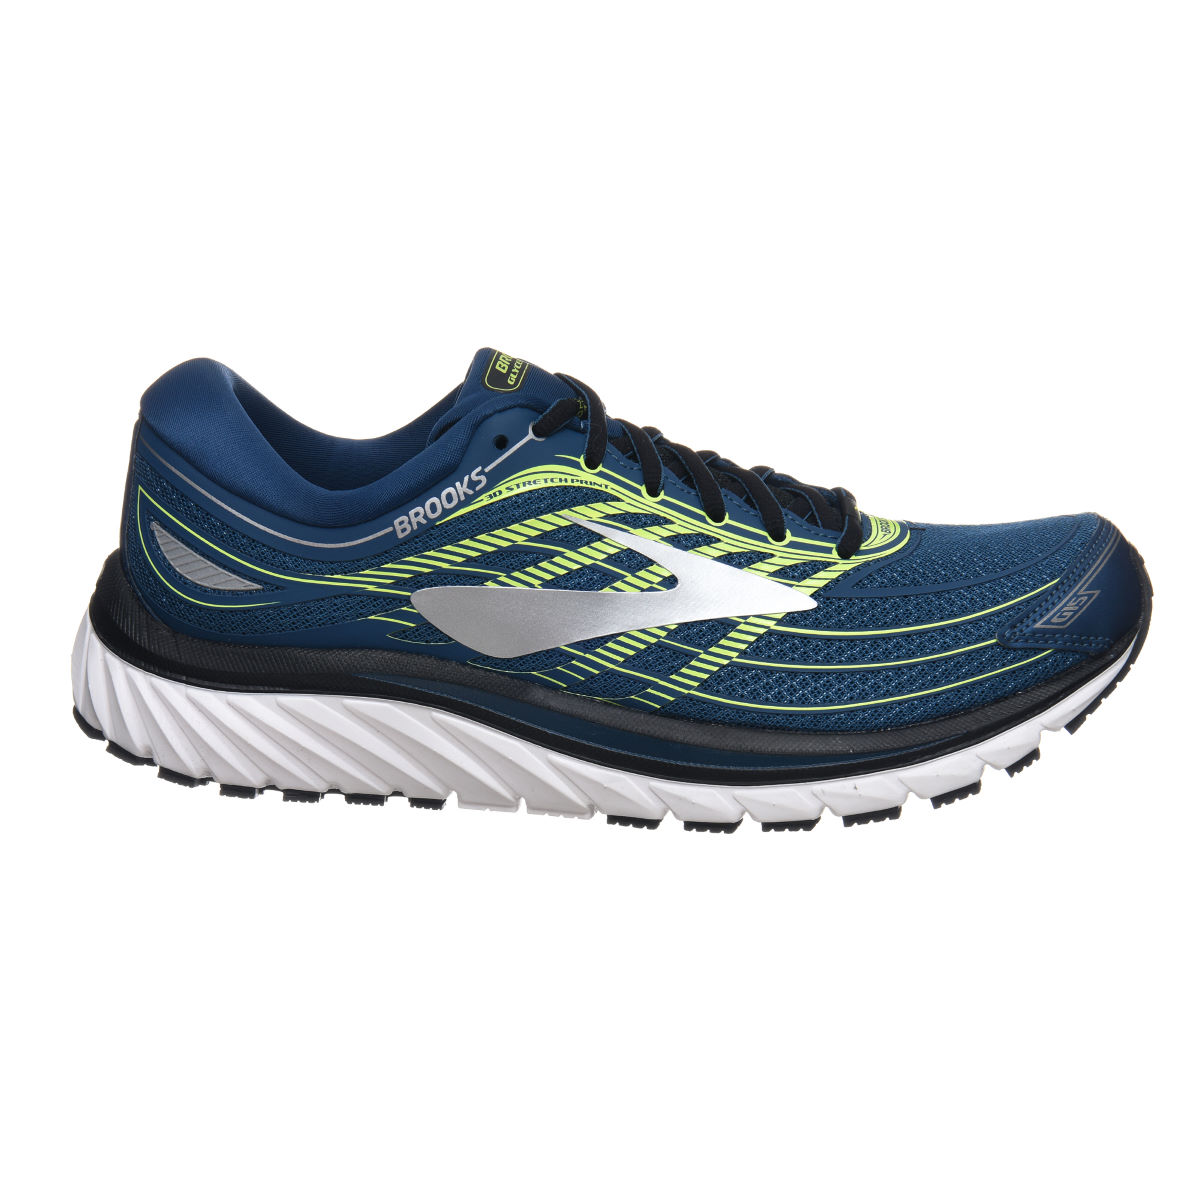 Chaussures Brooks Glycerin 15 - UK 10 Blue/Yellow